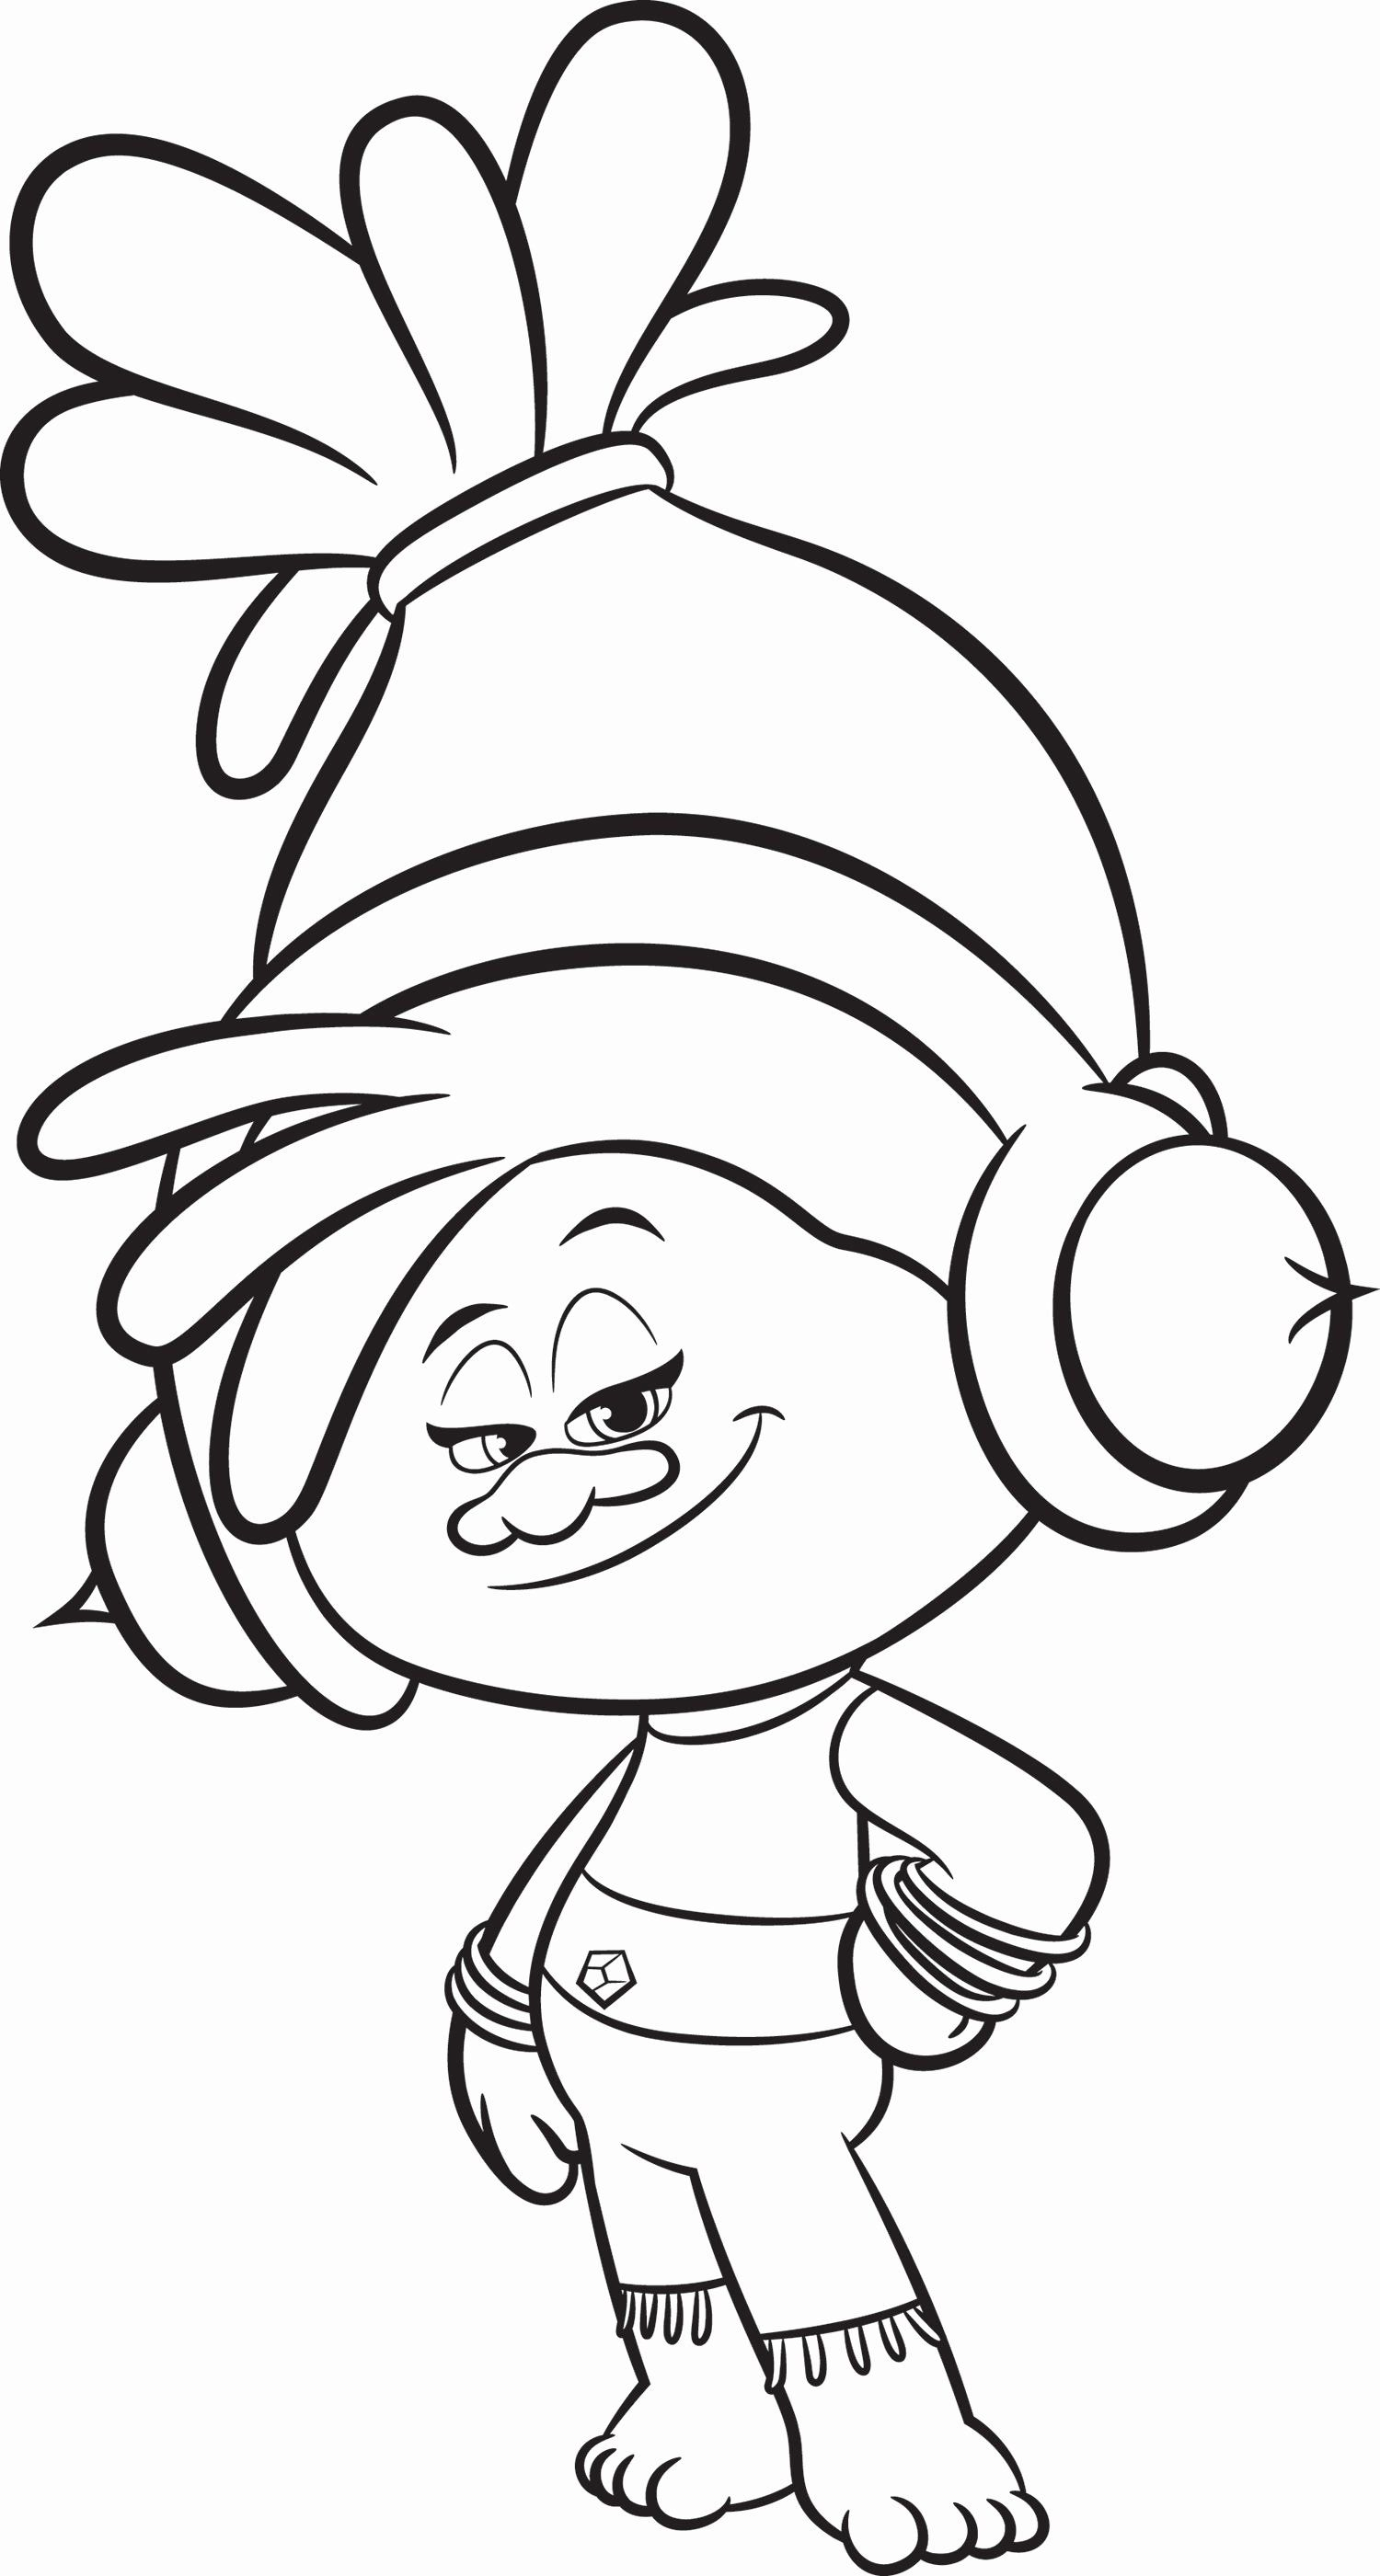 Princess Poppy Coloring Page Lovely Kolorowanka Poppy Najlepsze Kolorowanki Strony Poppy Coloring Page Cartoon Coloring Pages Coloring Pages [ 2801 x 1500 Pixel ]